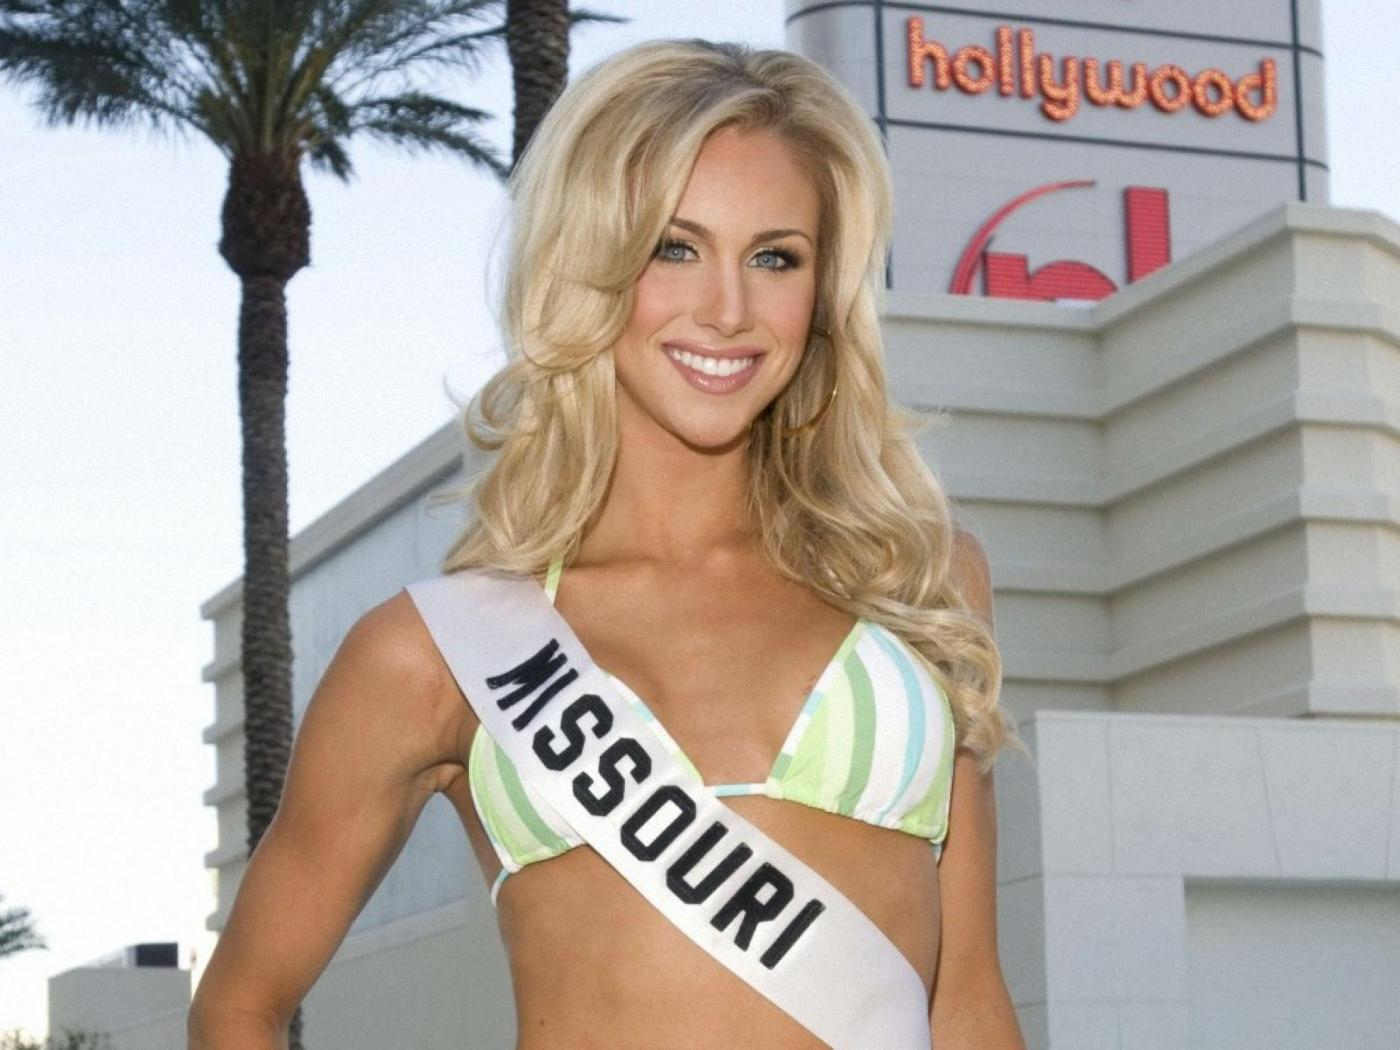 8 candice crawford (tony romo wife) - biggest ladies men in sports